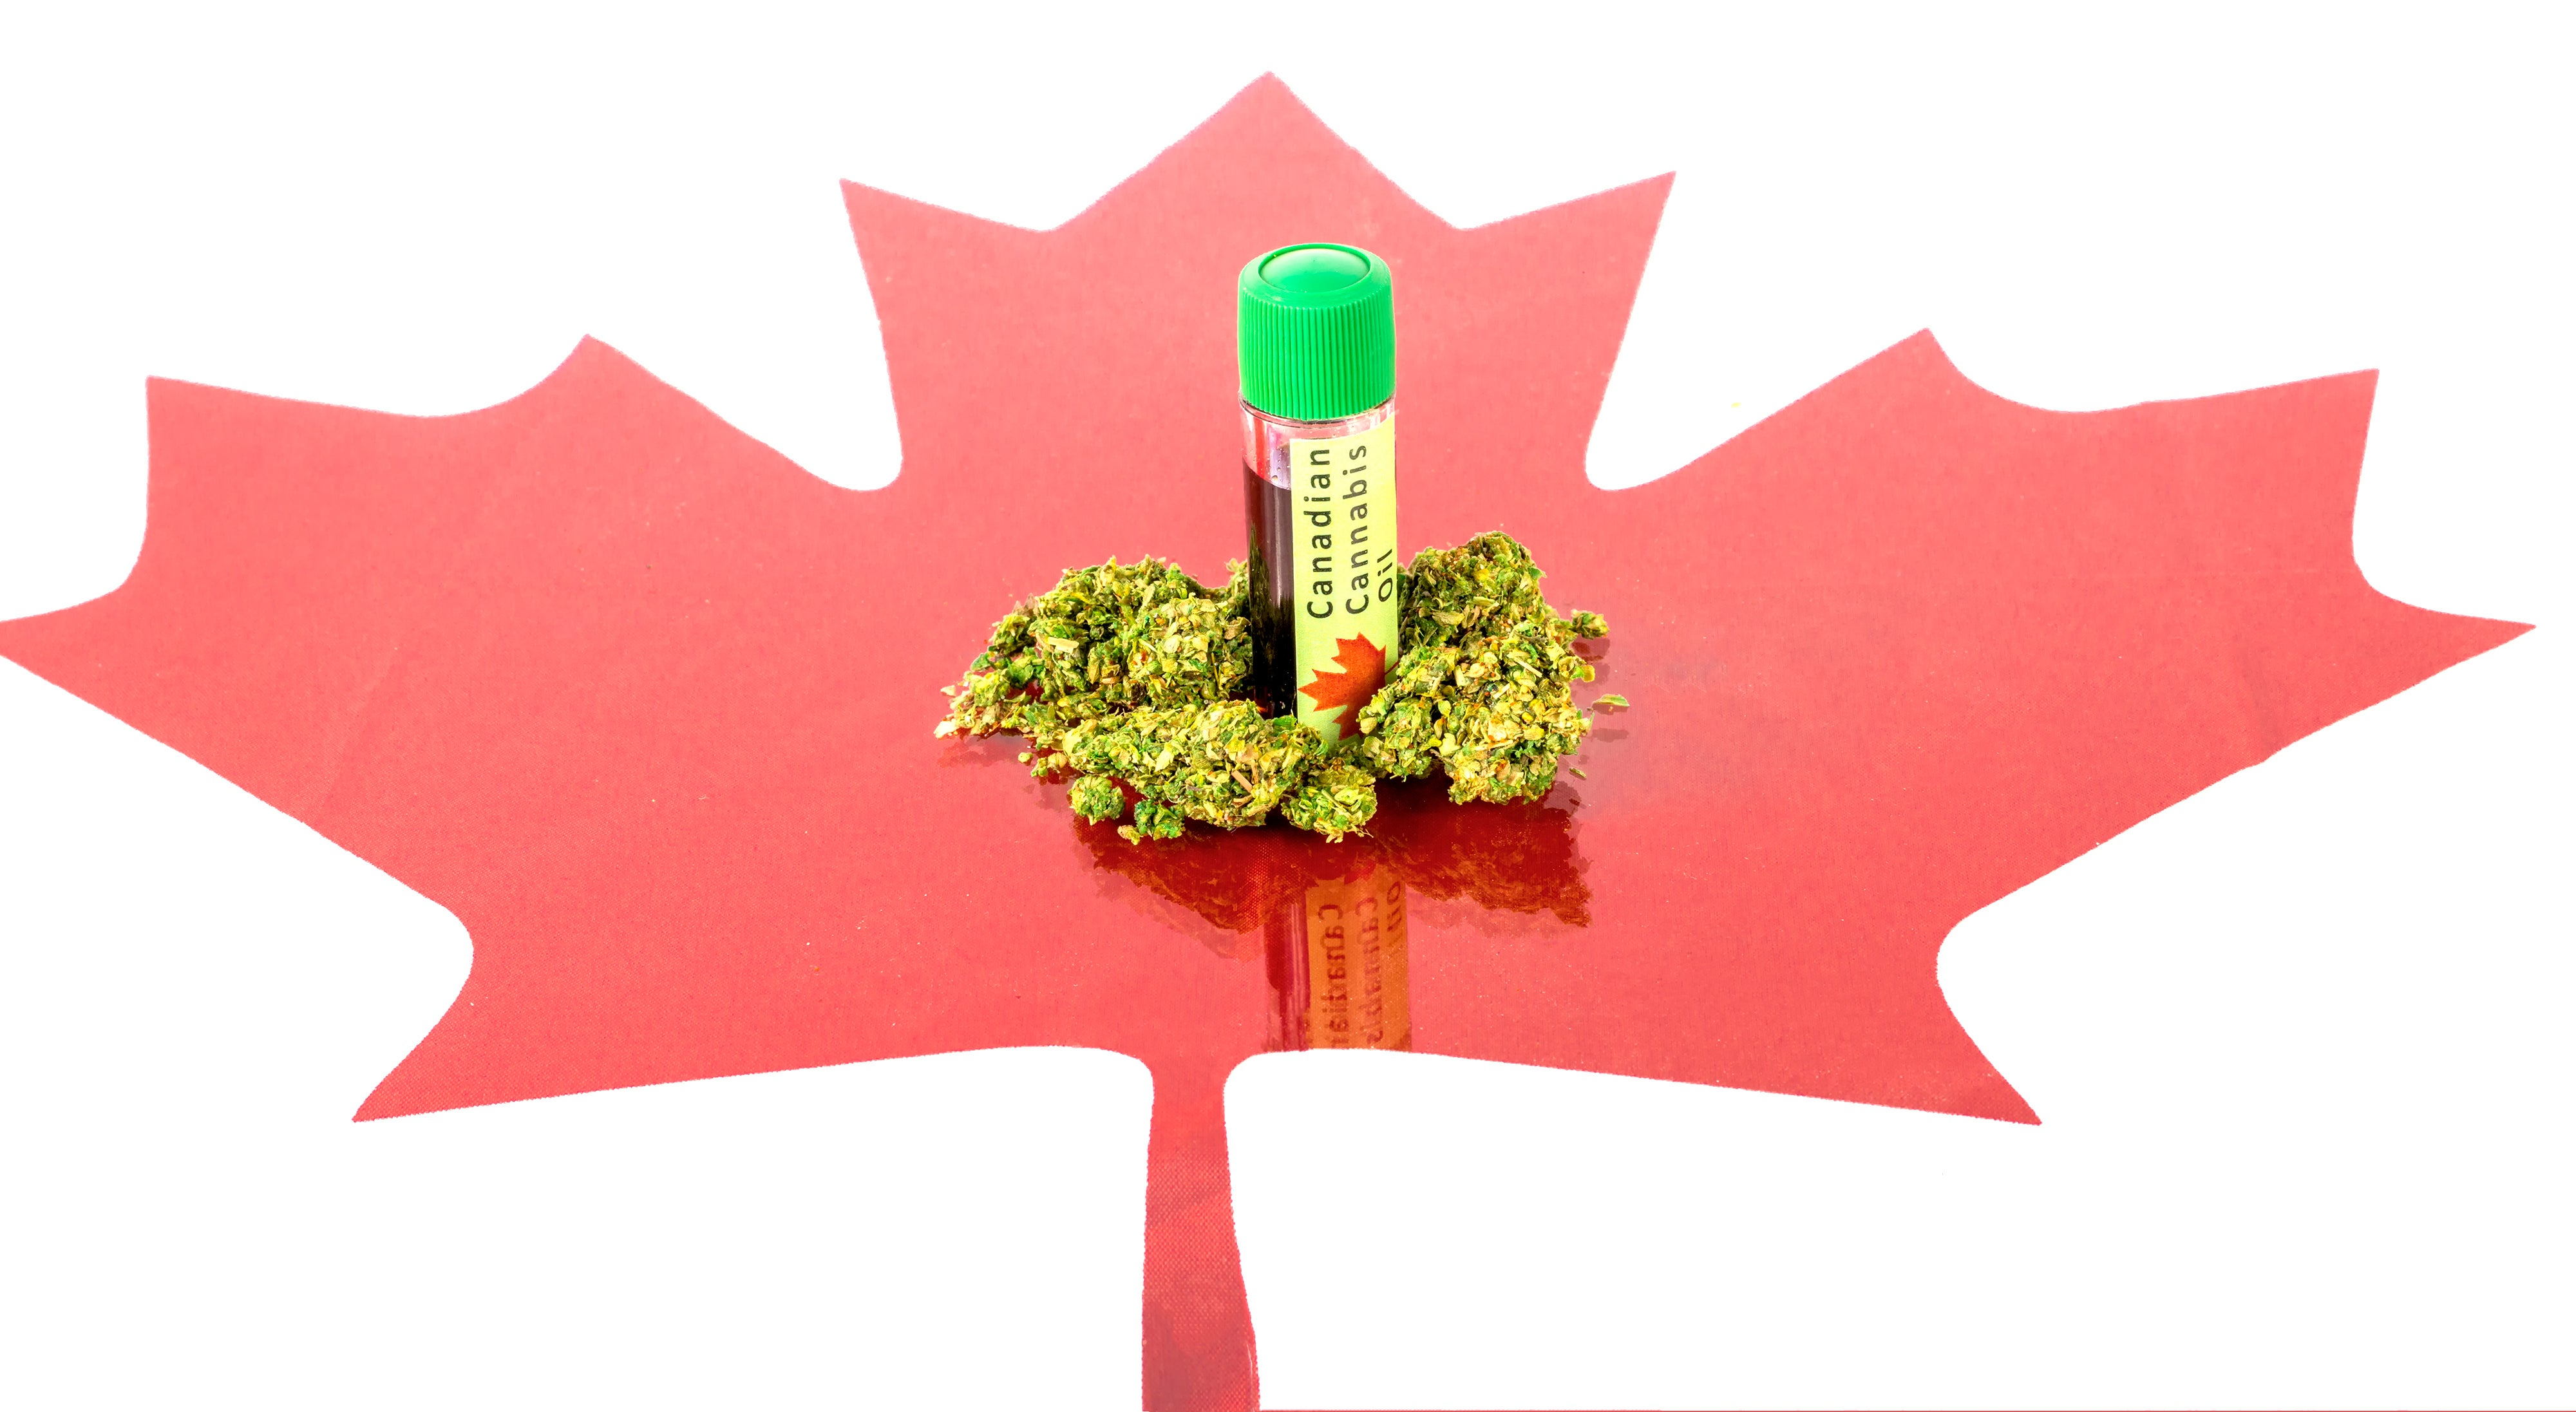 Marijuana buds and cannabis oil bottle on top of a red Canadian maple leaf cutout.